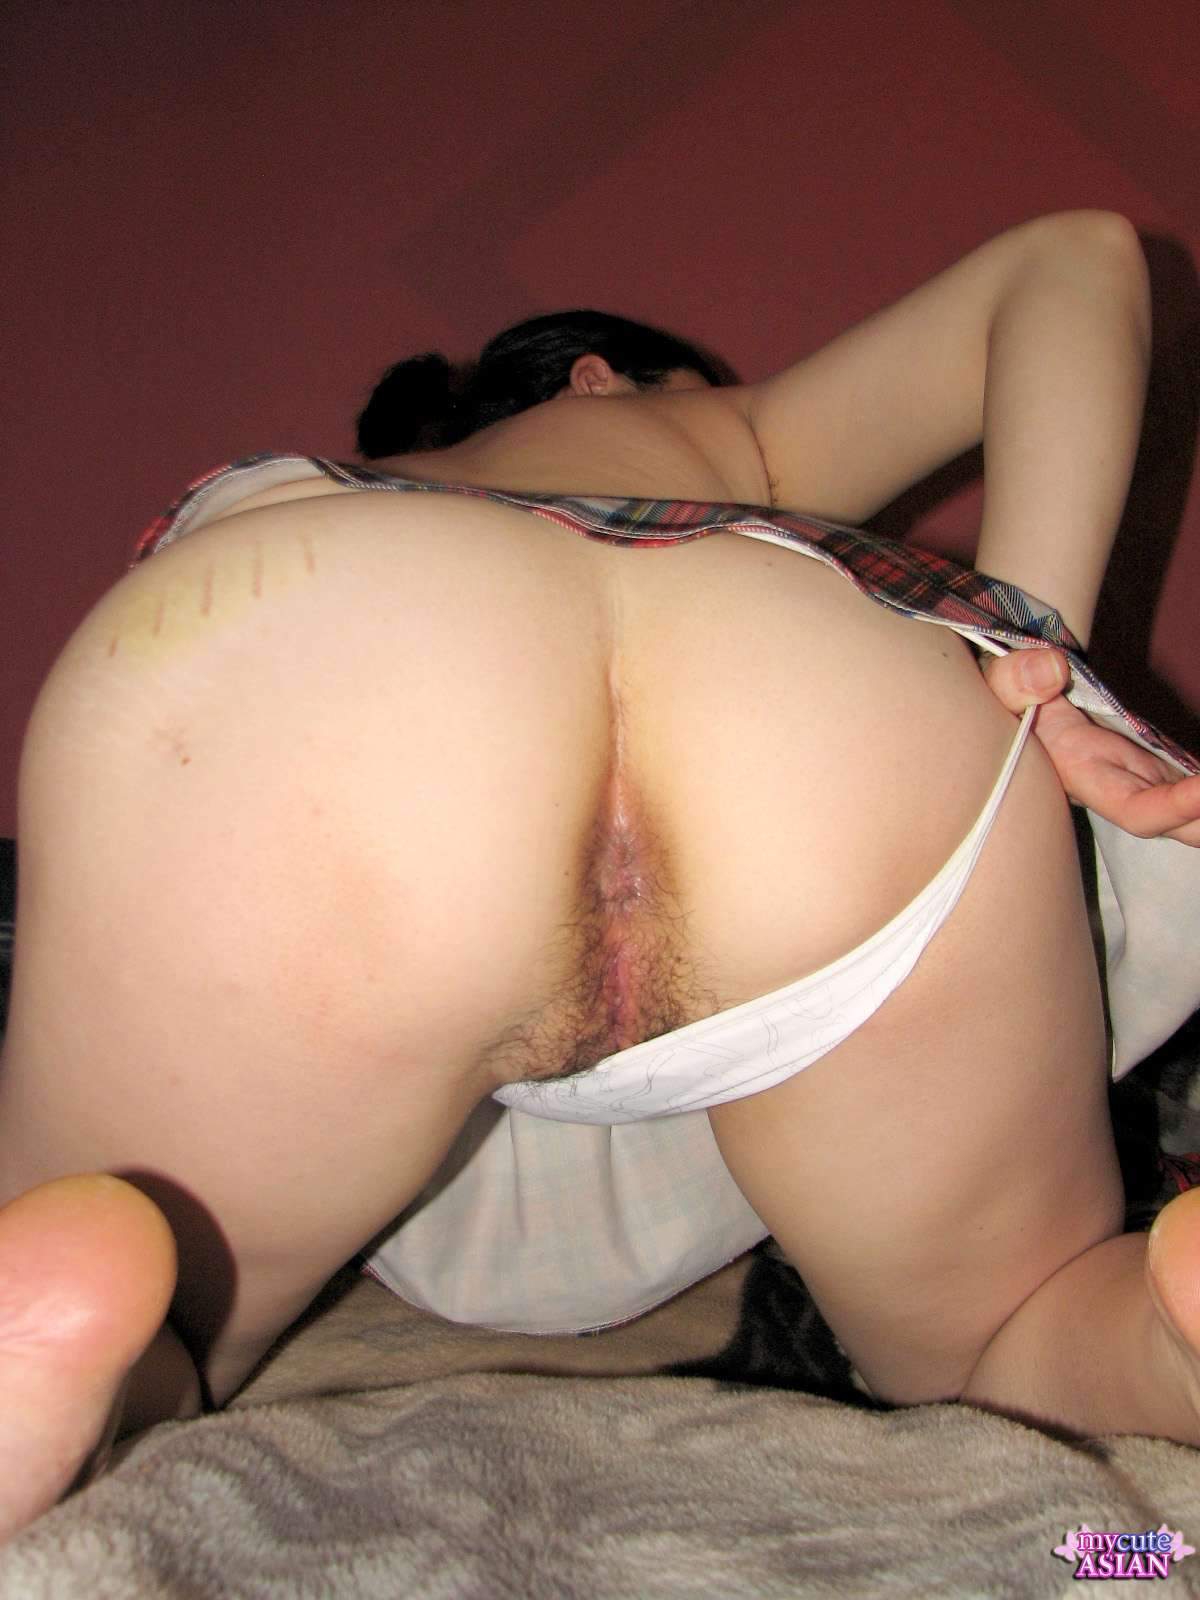 sexy school girl showing her hairy pussy and sharp tits in front of